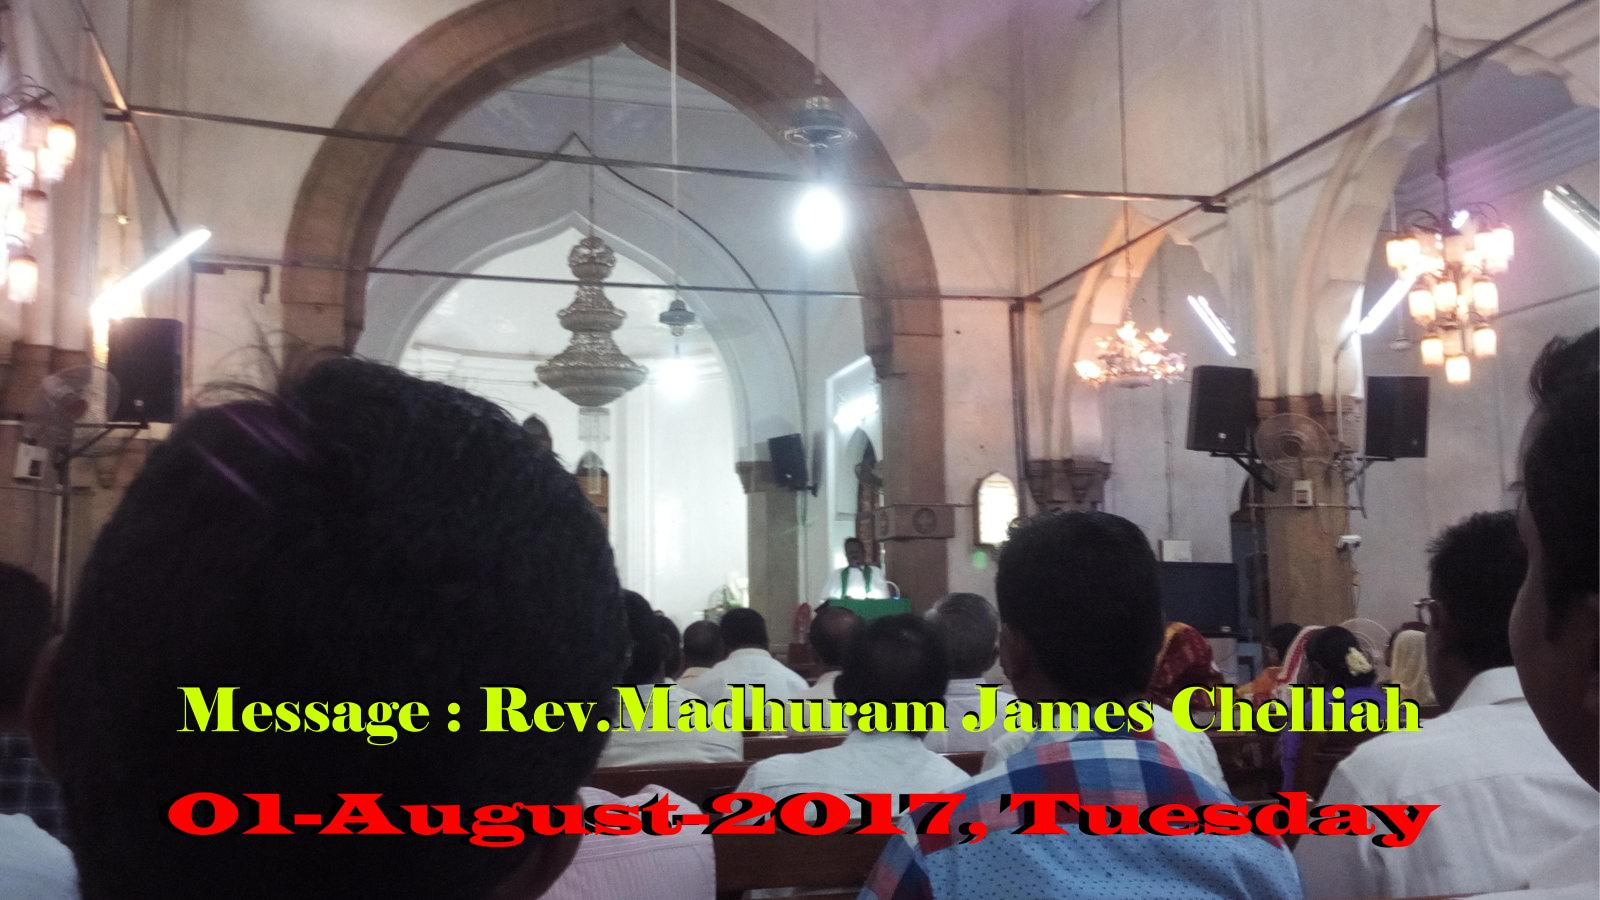 First of The Month Service - 01-August-2017